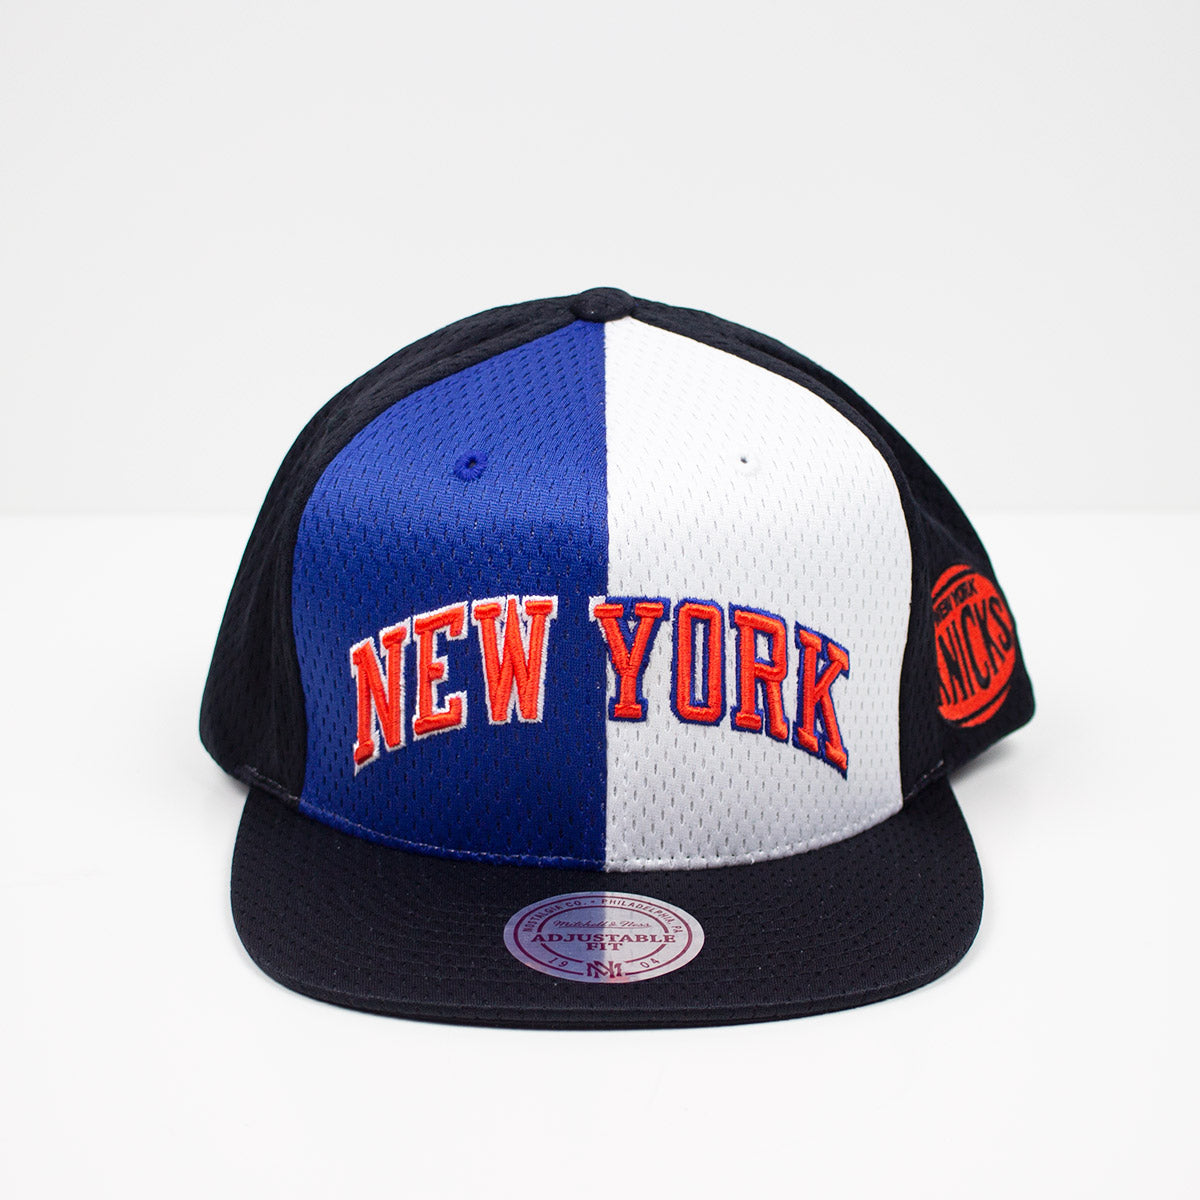 on sale 095d5 52662 Mitchell   Ness New York Knicks Division Mesh Snapback Hat